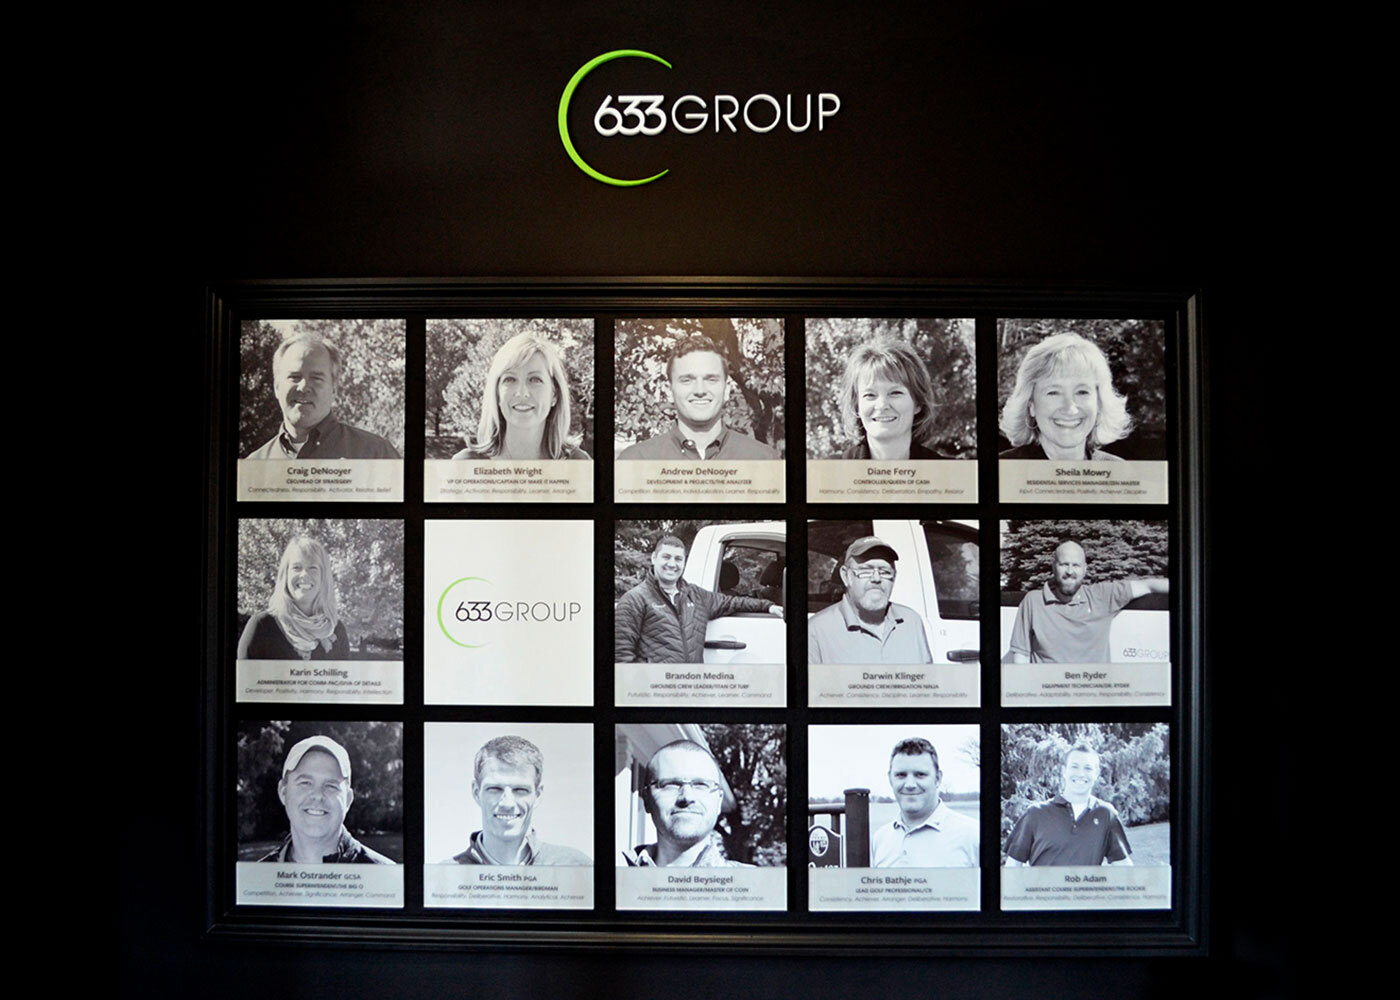 633 Group Staff Gallery